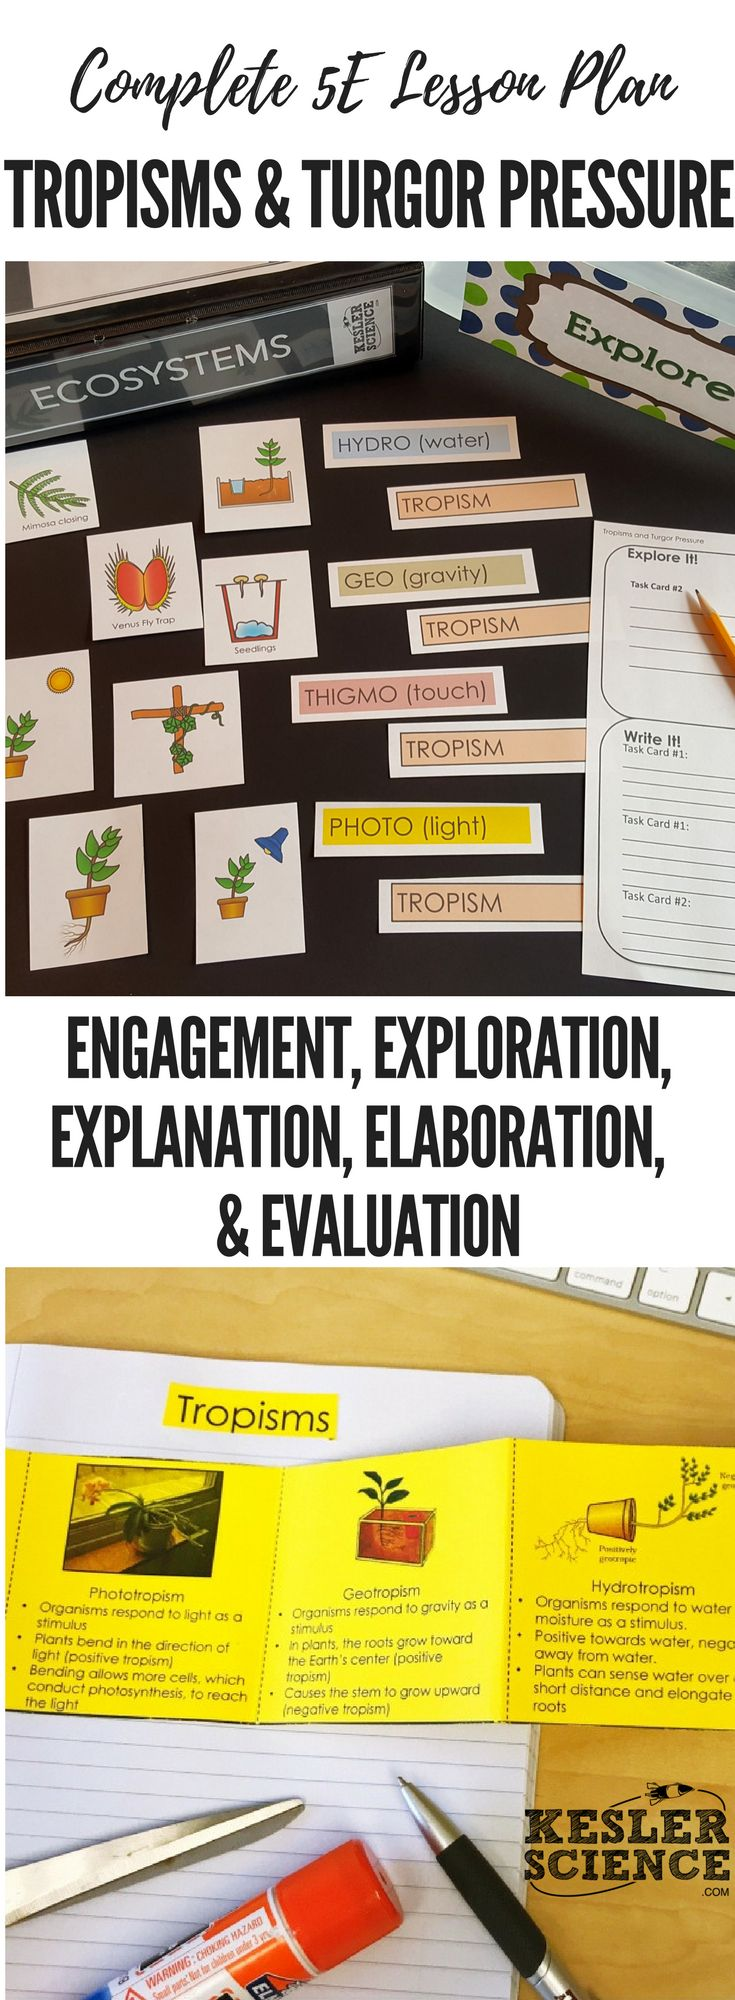 420 best environmental science images on pinterest physical tropisms and turgor pressure 5e lesson plan fandeluxe Choice Image